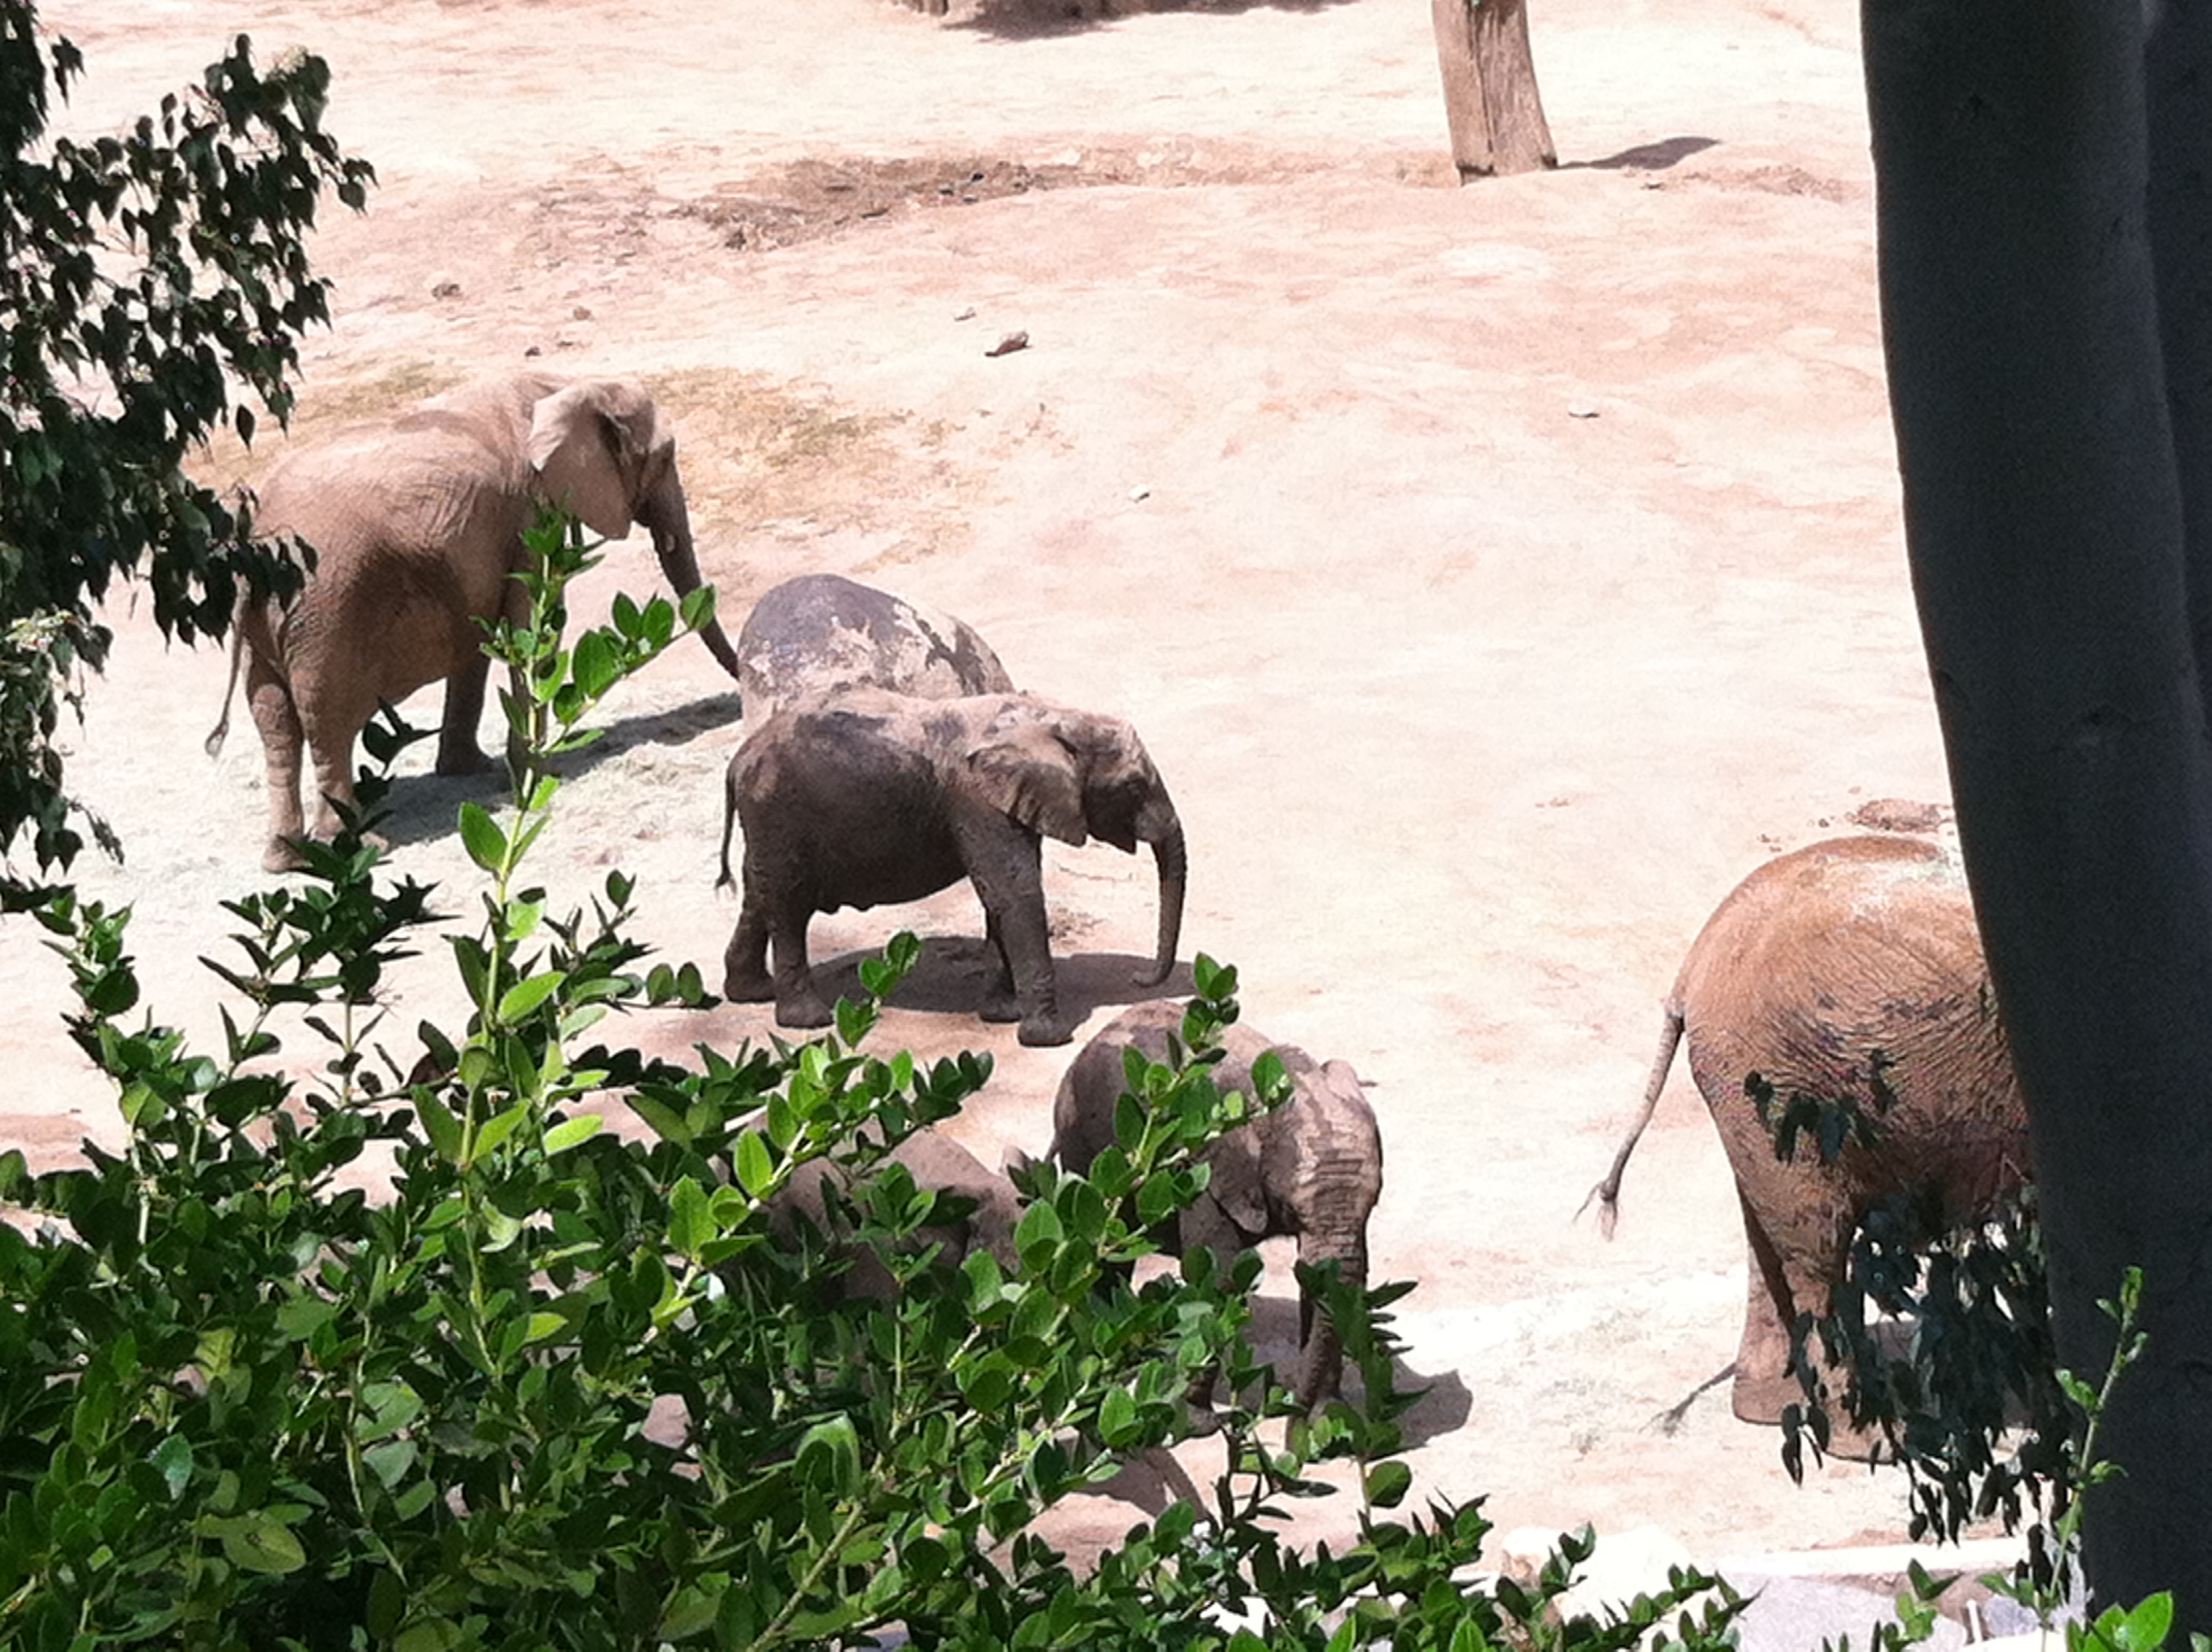 My favorite animals at the San Diego Zoo Safari Park